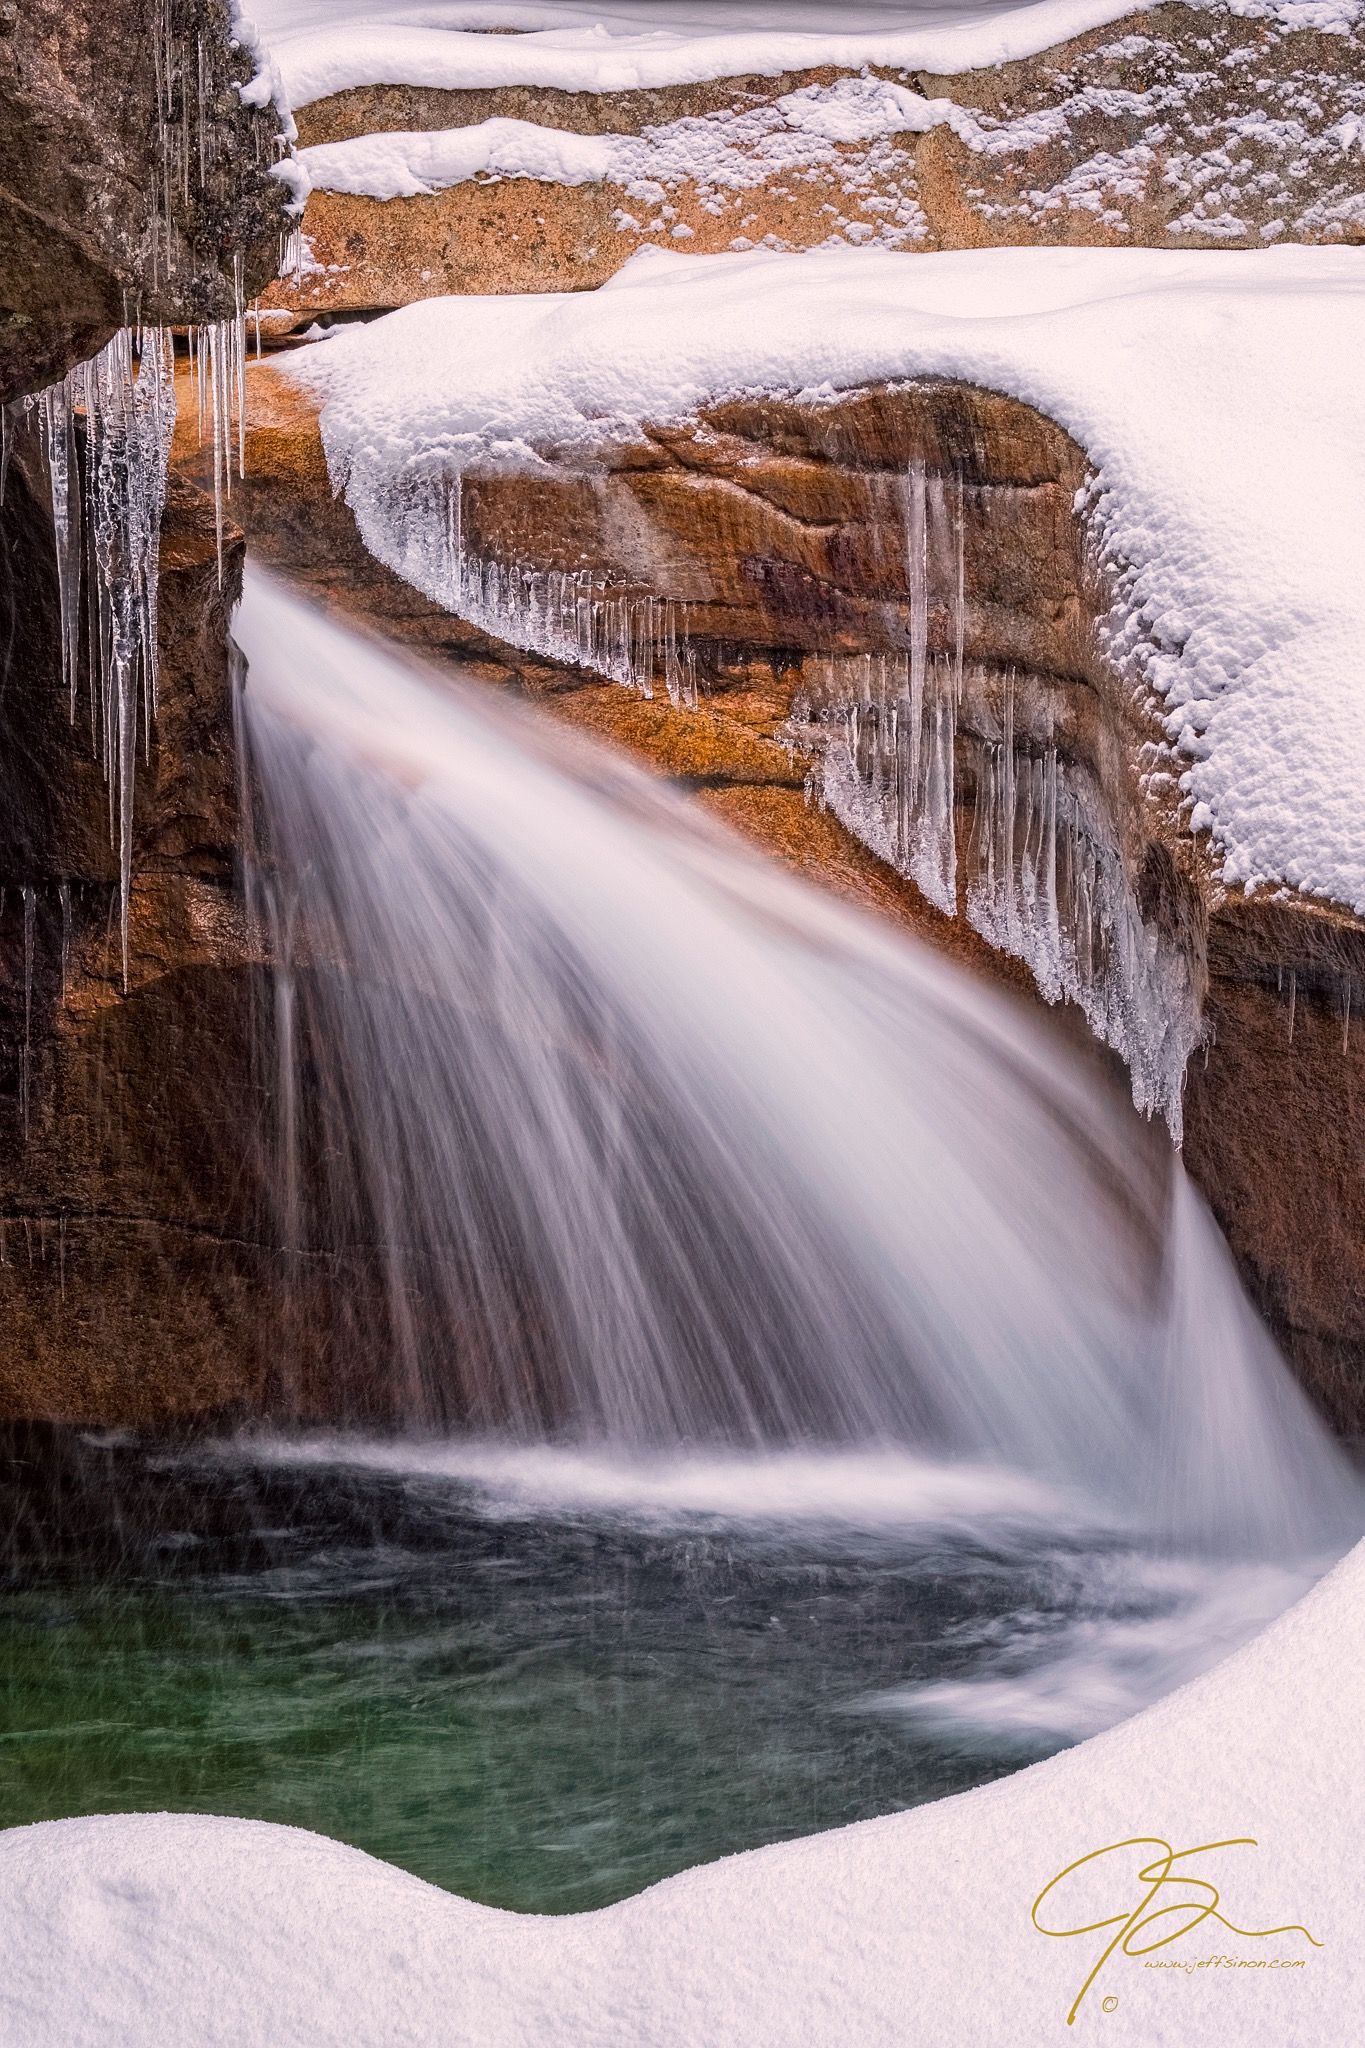 Snowy closeup of The Basin, a scenic waterfall in Franconia Notch, NH.